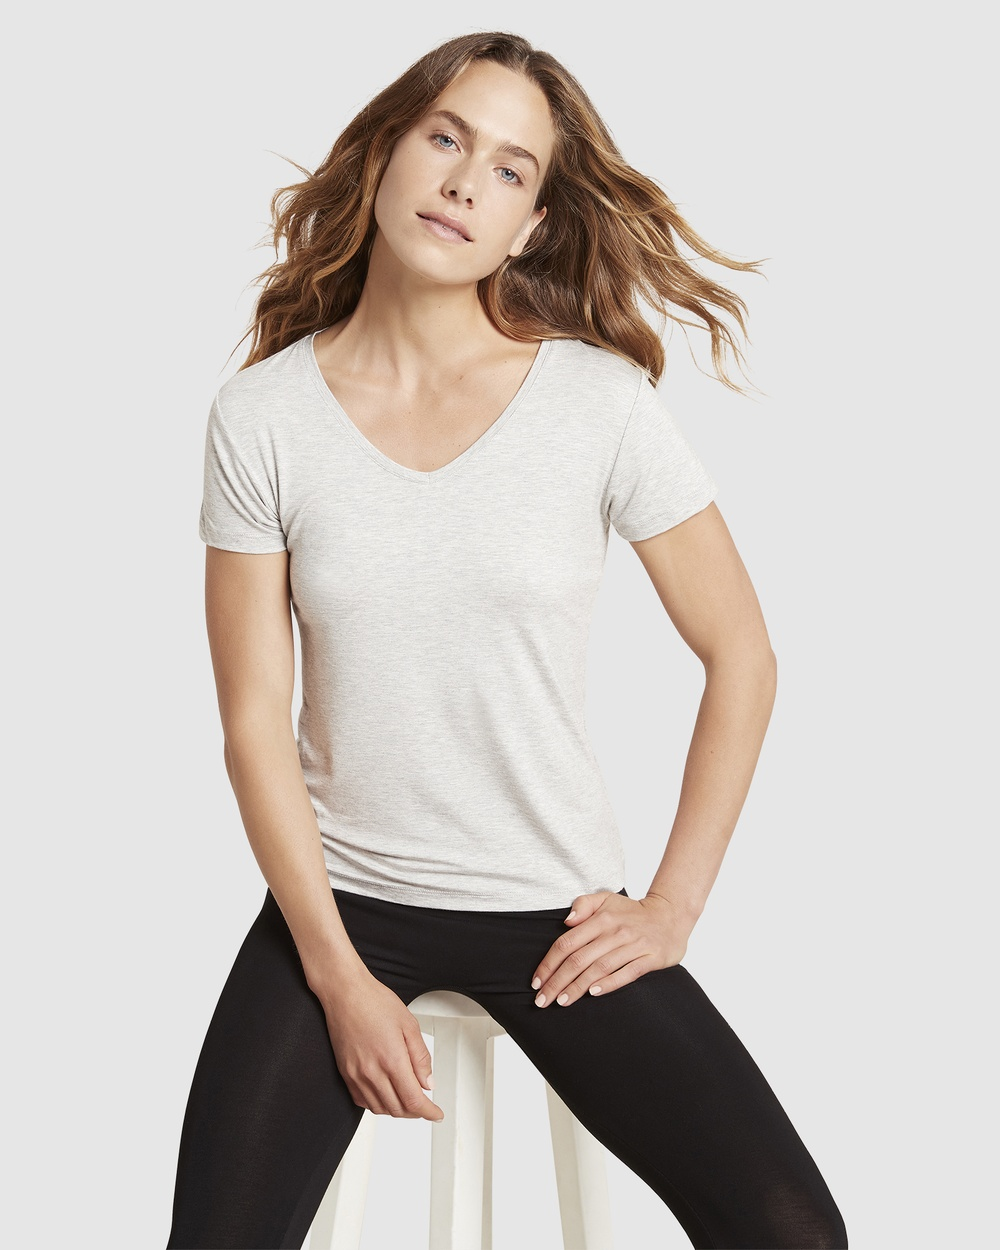 Boody Organic Bamboo Eco Wear - V Neck T Shirt - Short Sleeve T-Shirts (Light Marl) V-Neck T-Shirt